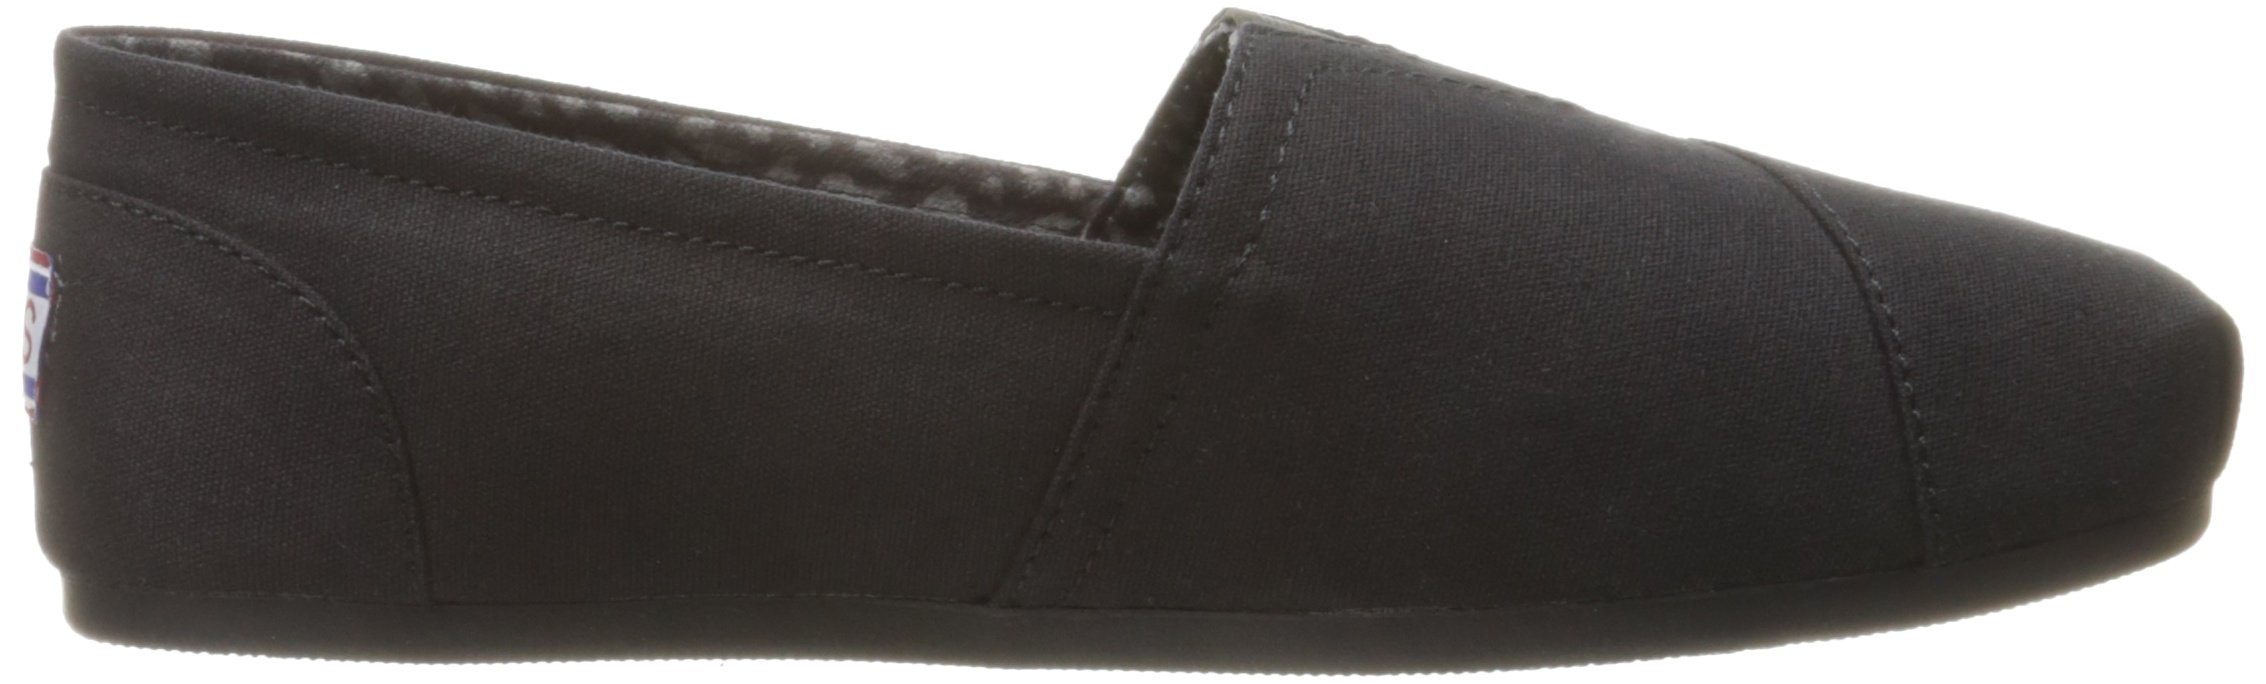 Skechers BOBS from Women's Plush - Peace and Love Flat, Black, 9.5 W US by Skechers (Image #7)